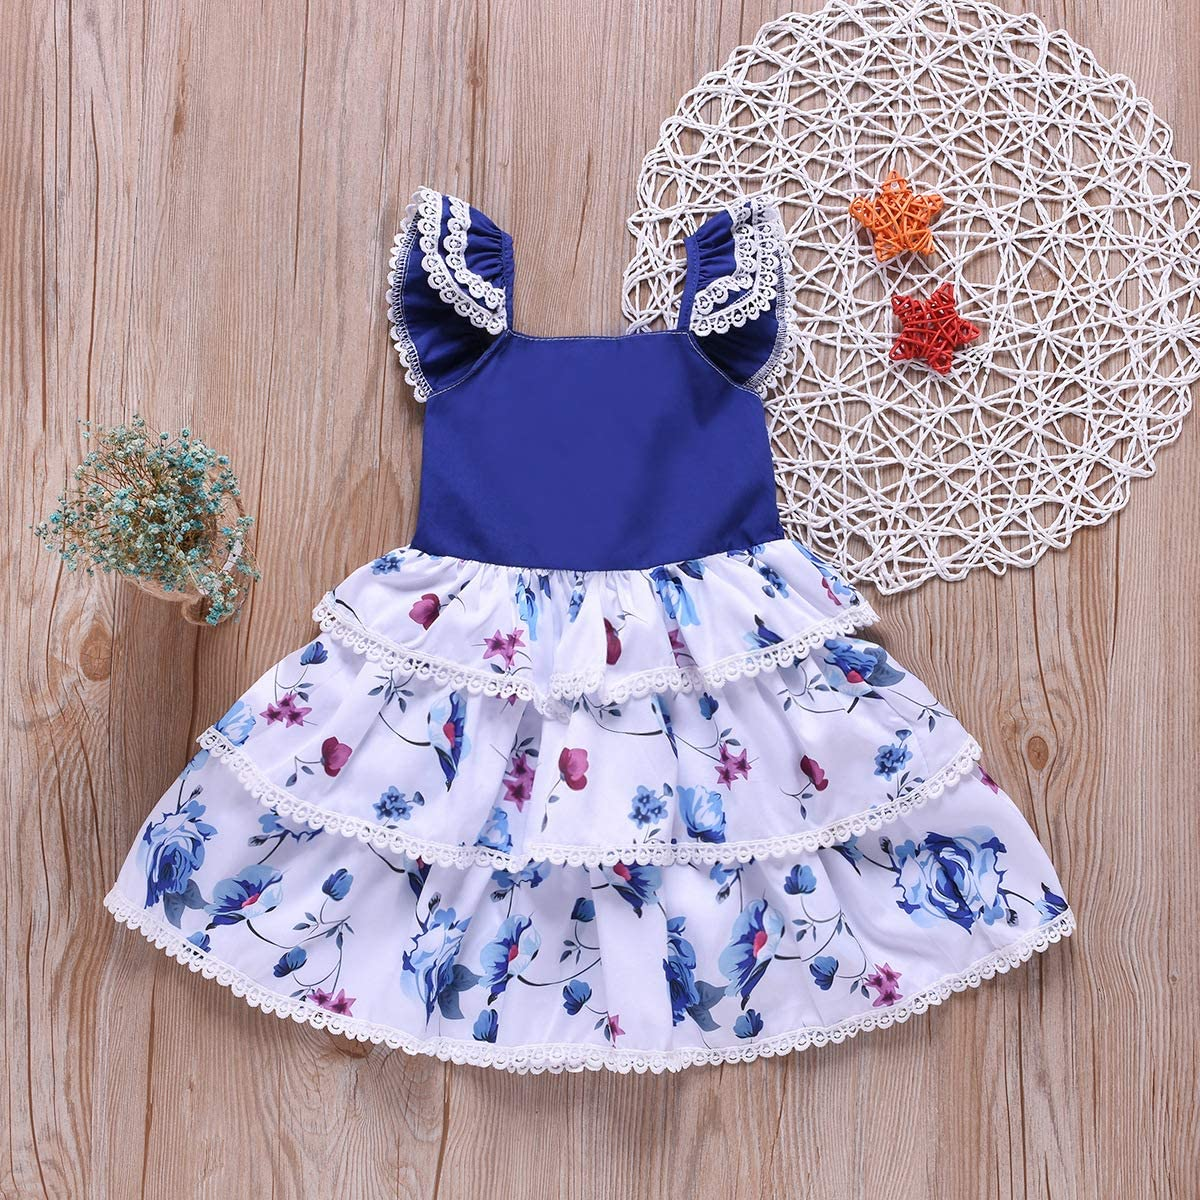 Toddler Baby Girls Ruffle Lace Floral Dress Layered Flared Cake Smash Dresses